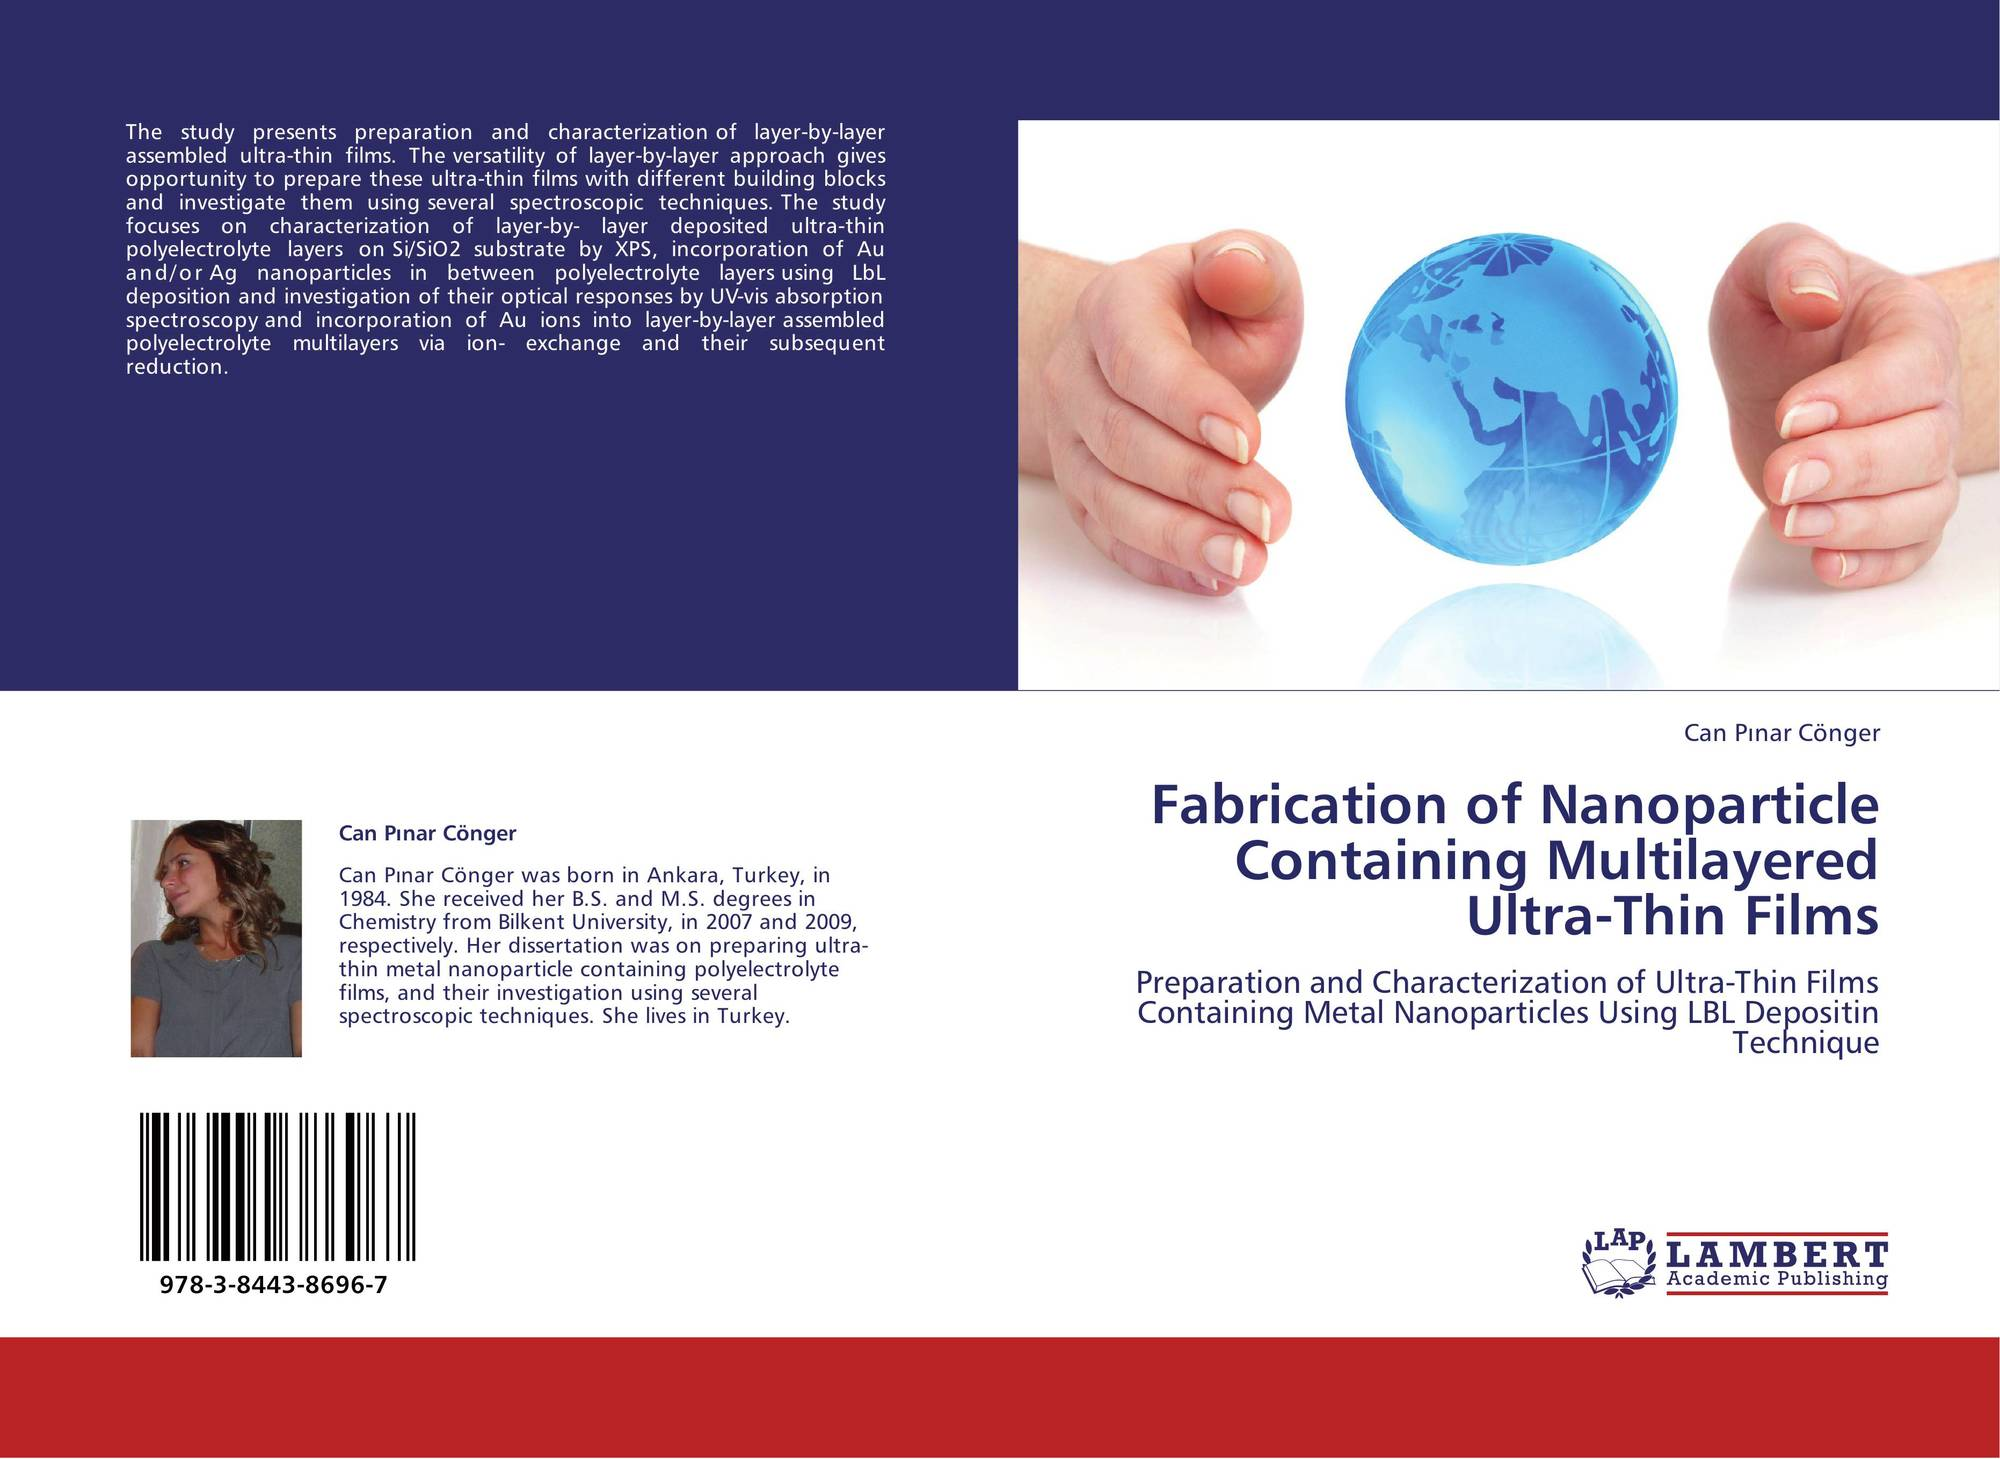 Bookcover of FABRICATION OF NANOPARTICLE CONTAINING MULTILAYERED ULTRA-THIN  FILMS. 9783844386967